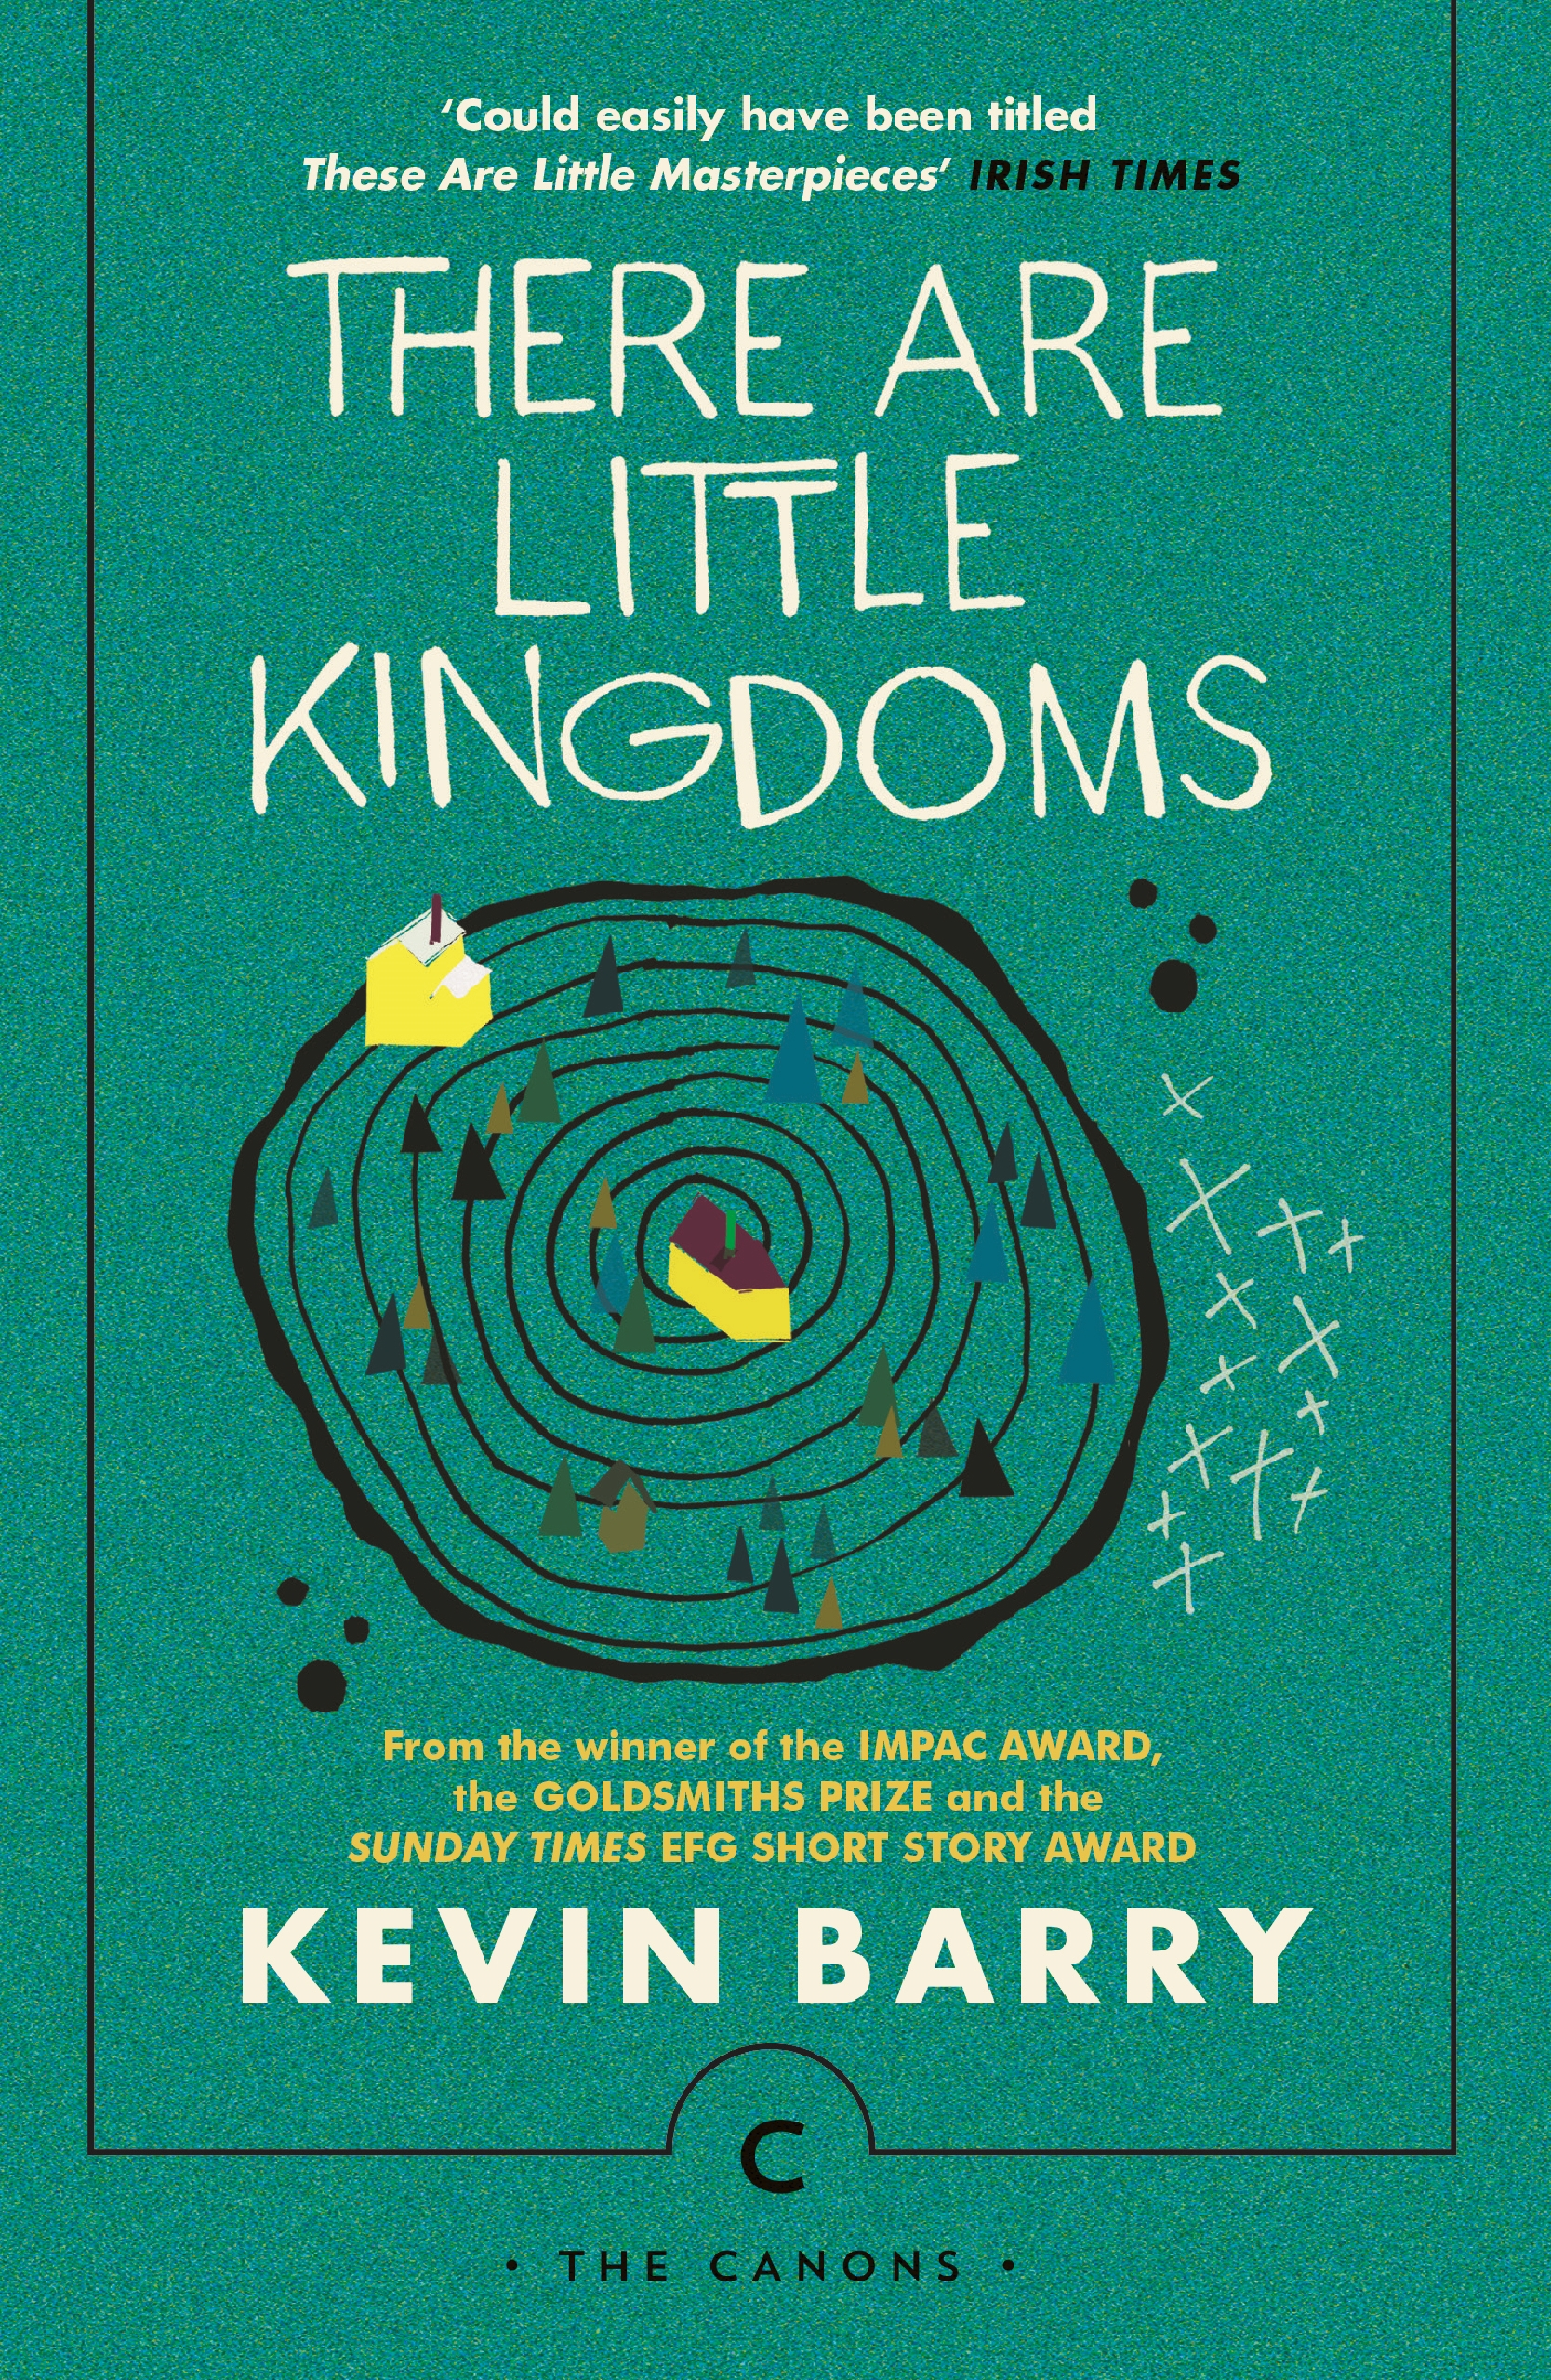 there-are-little-kingdoms-paperback-cover-9781786890177.jpg